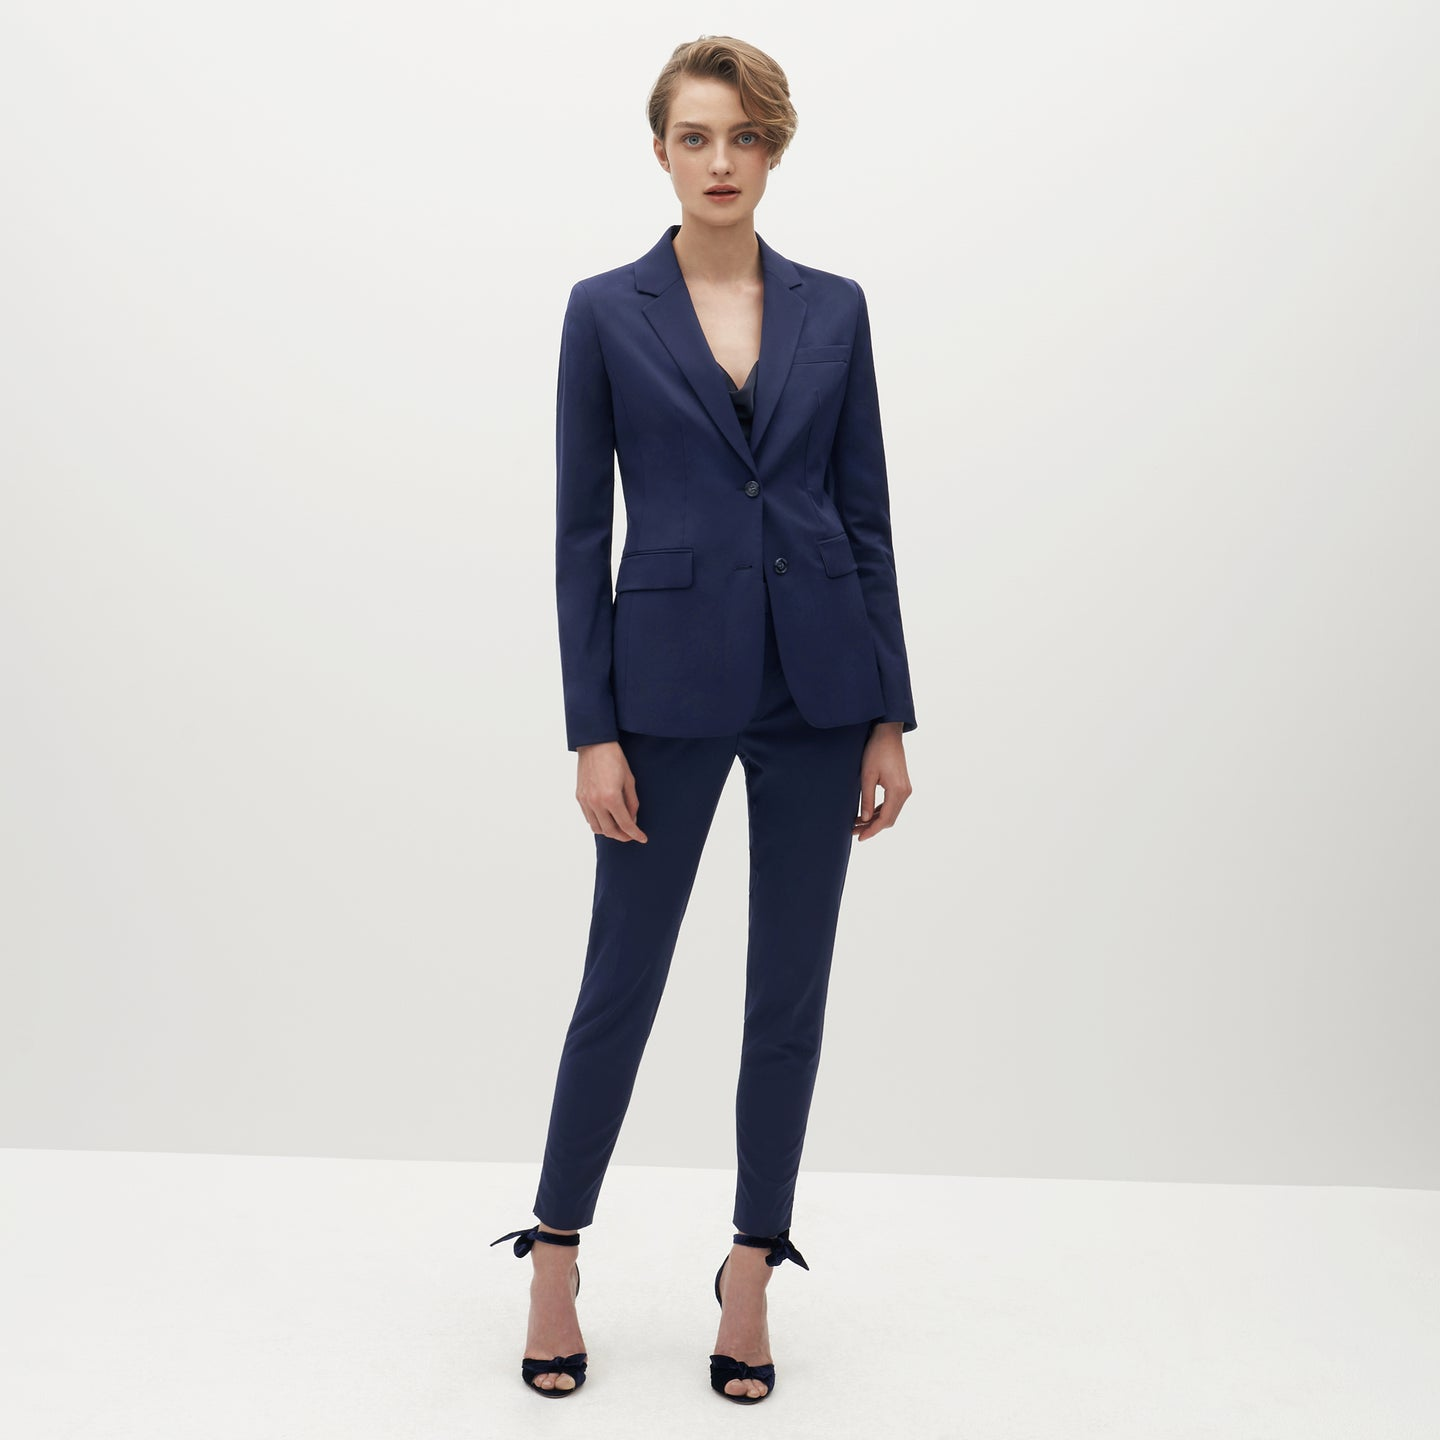 Women's Brilliant Blue Suit Pants